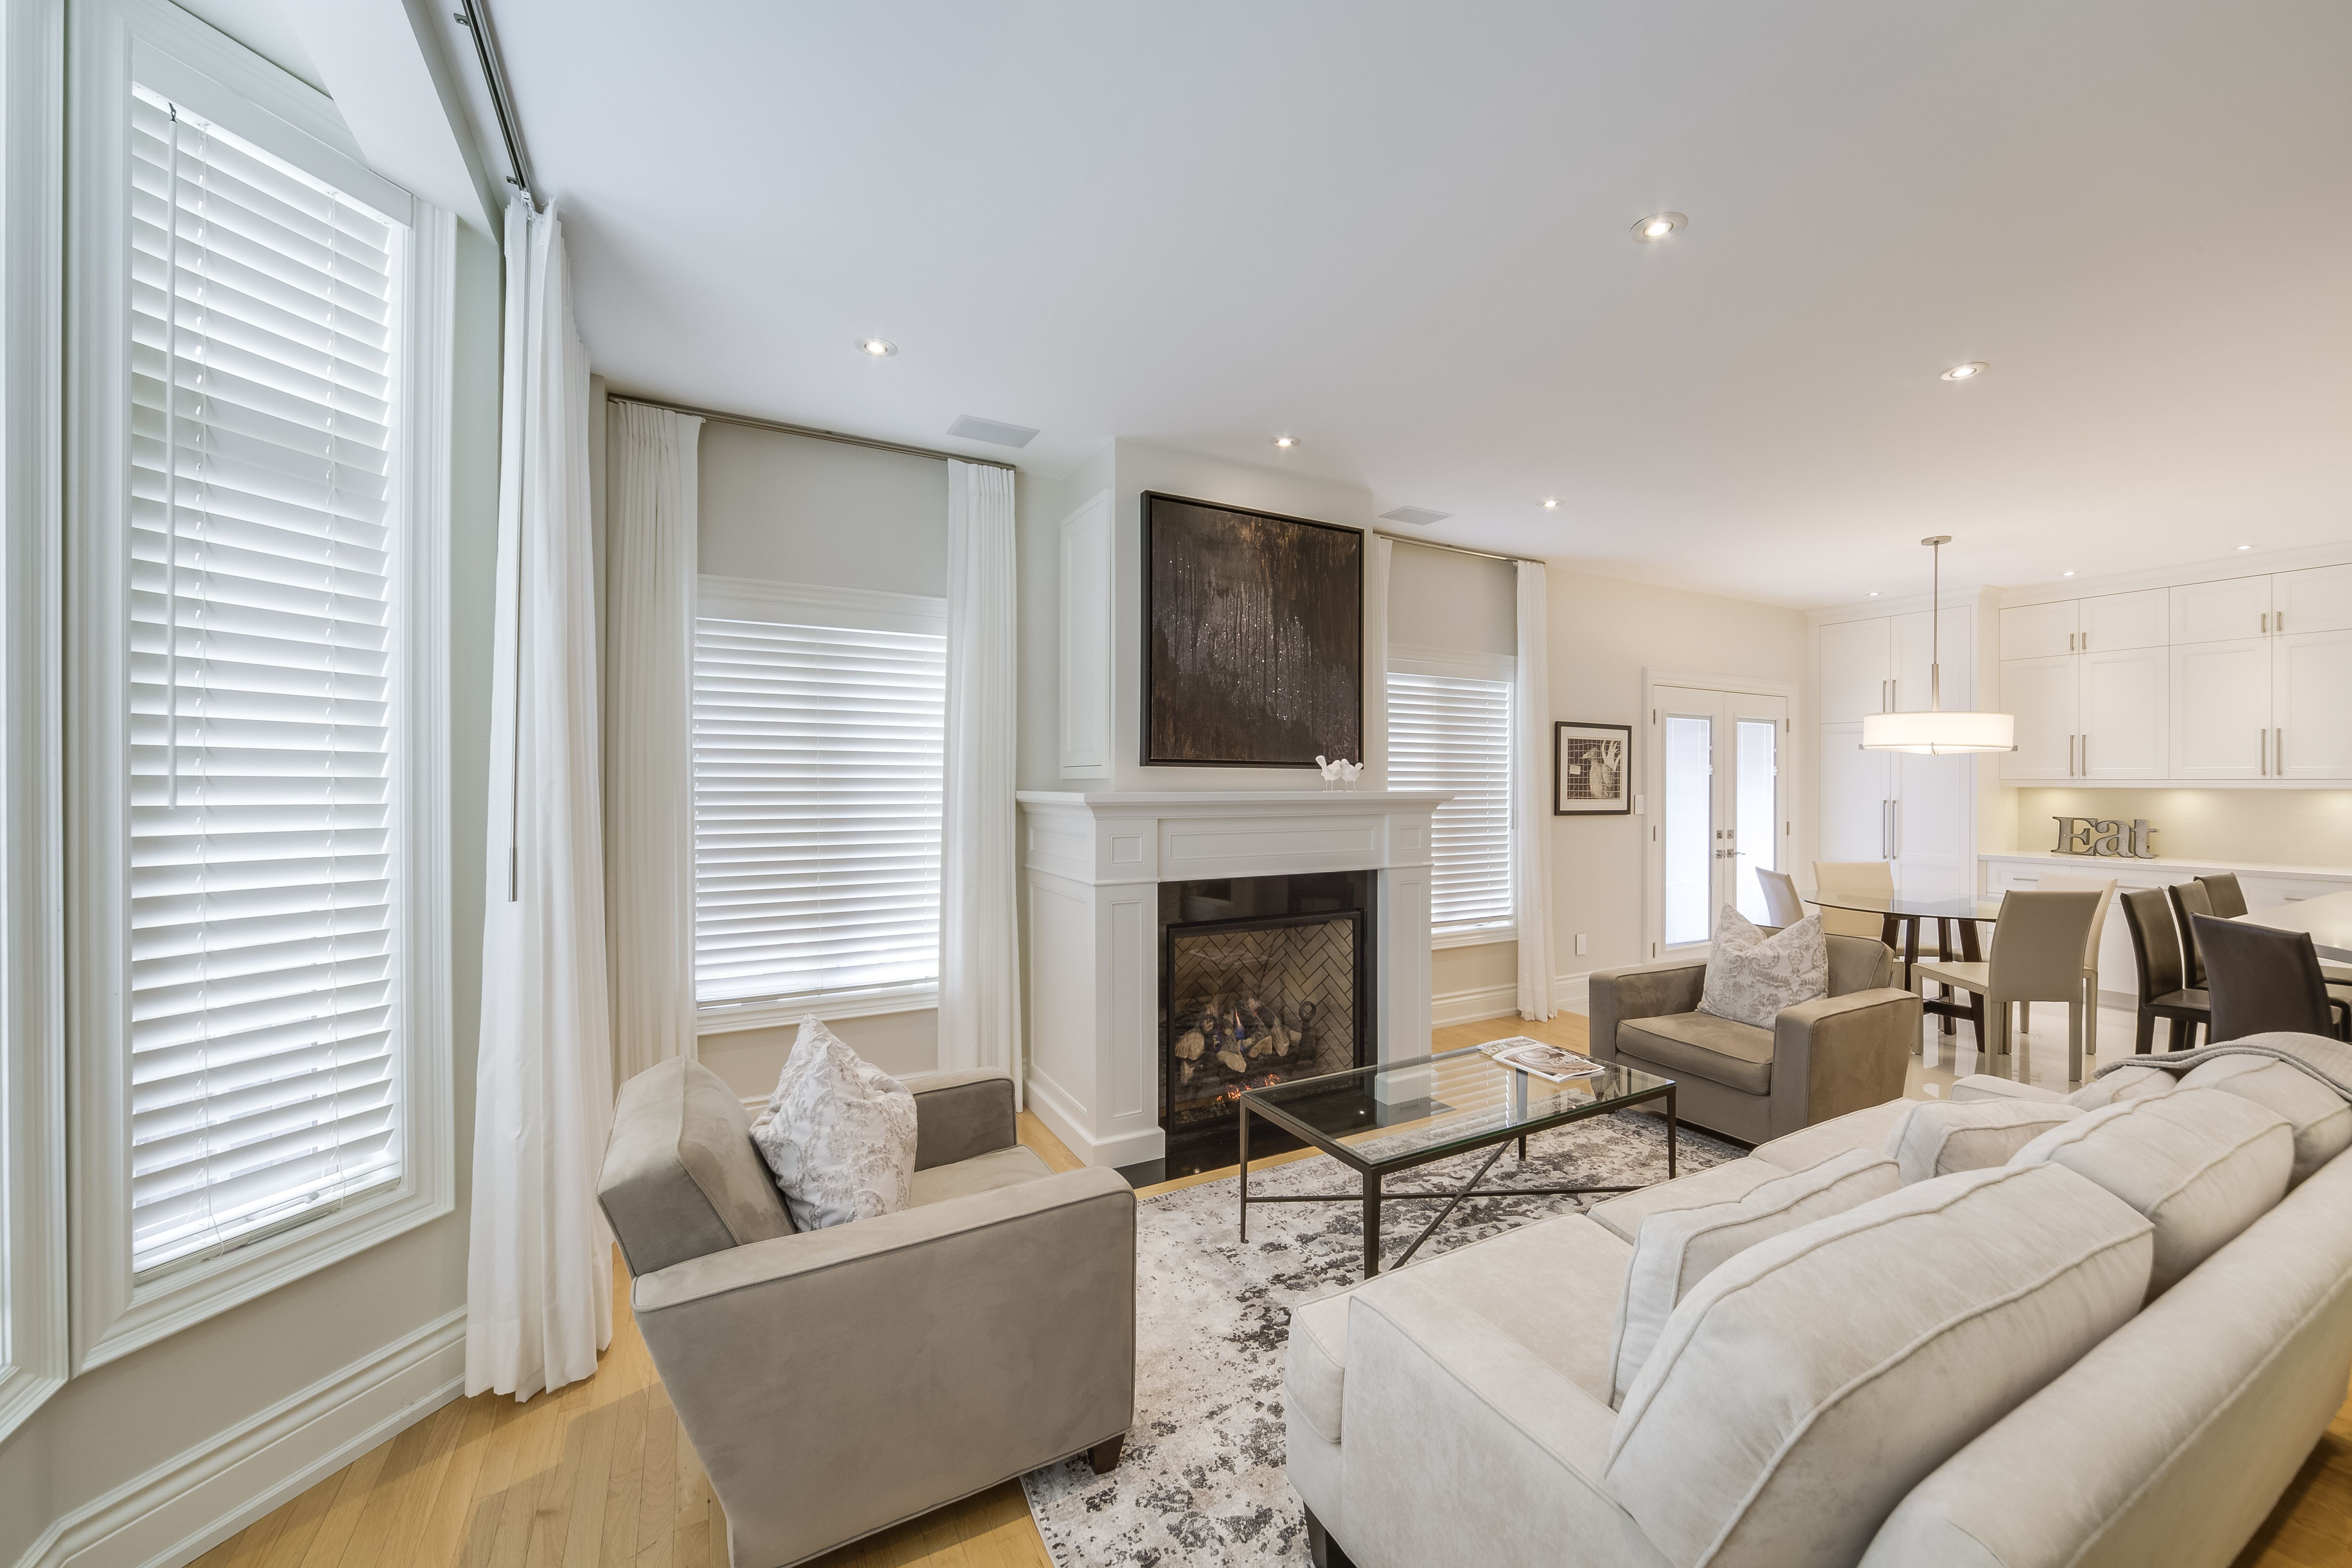 All White Window Coverings Such As Wood Blinds And Linen Drapes Bring A Light And Chic Vibe To This Cozy Condo Blinds For Windows Wood Blinds Budget Blinds #wooden #blinds #for #living #room